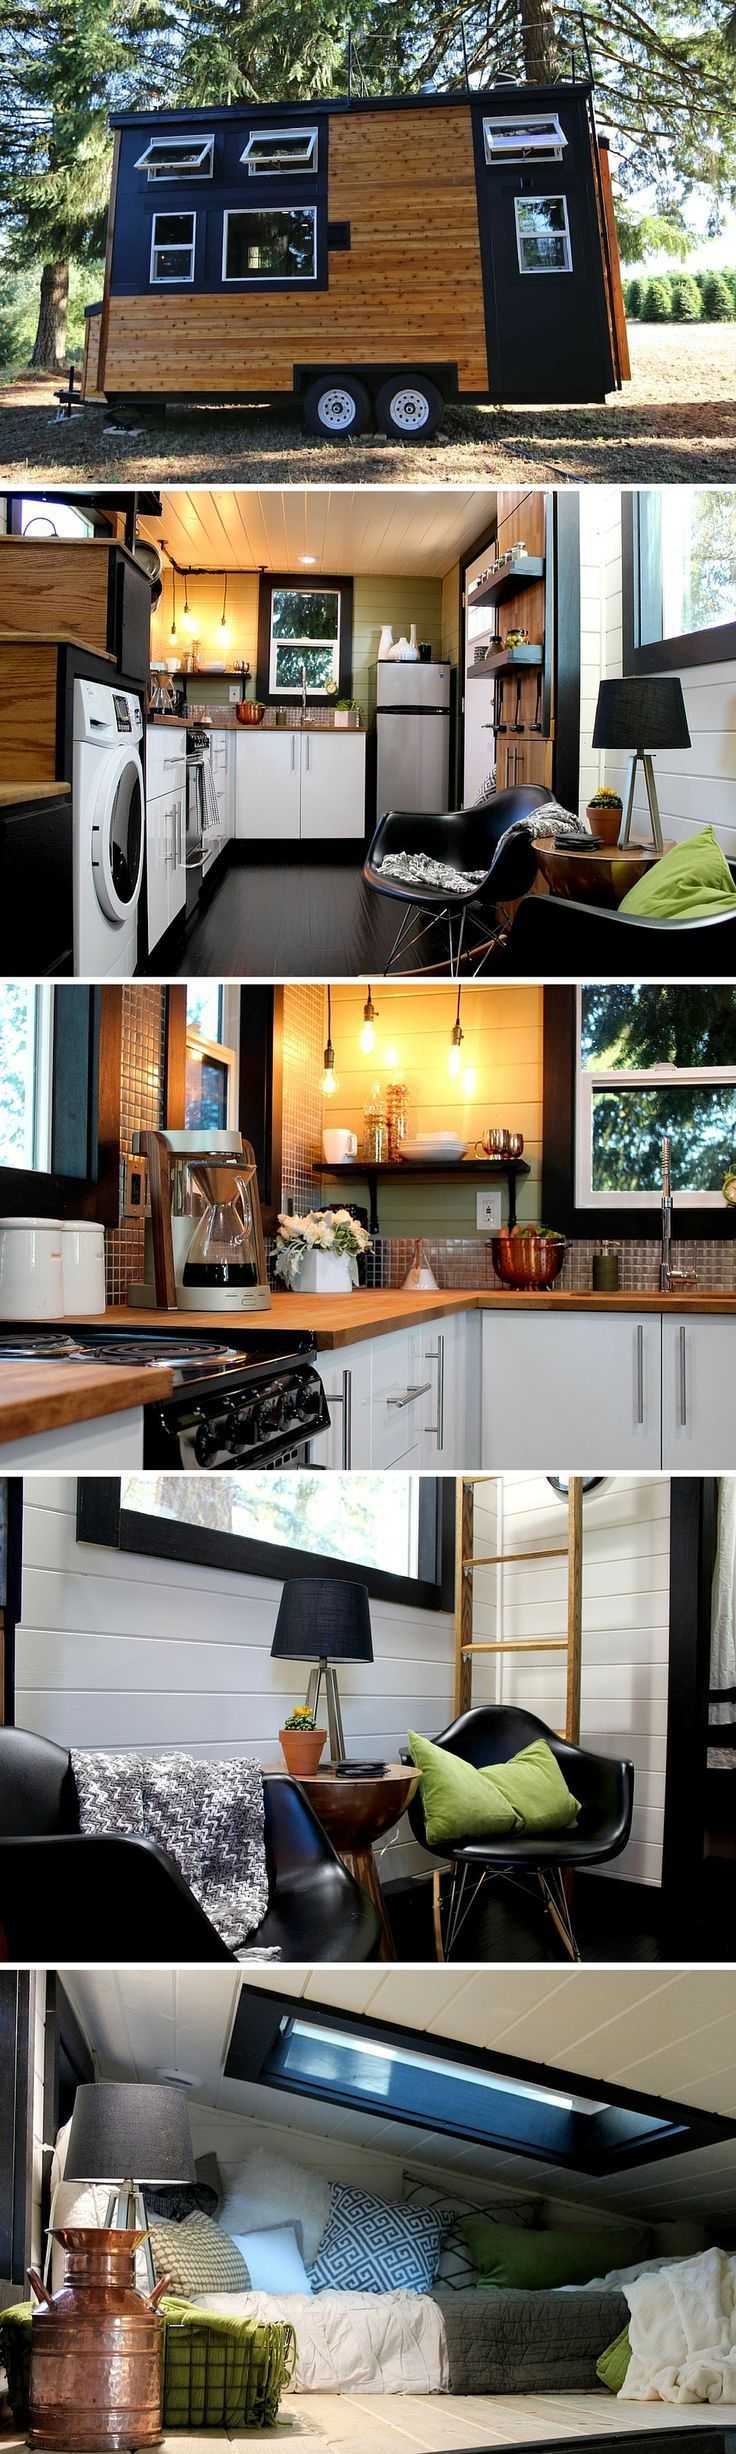 A stunning modern tiny house, built for a couple on the go. Designed and built by Tiny Heirloom of Portland, Oregon.